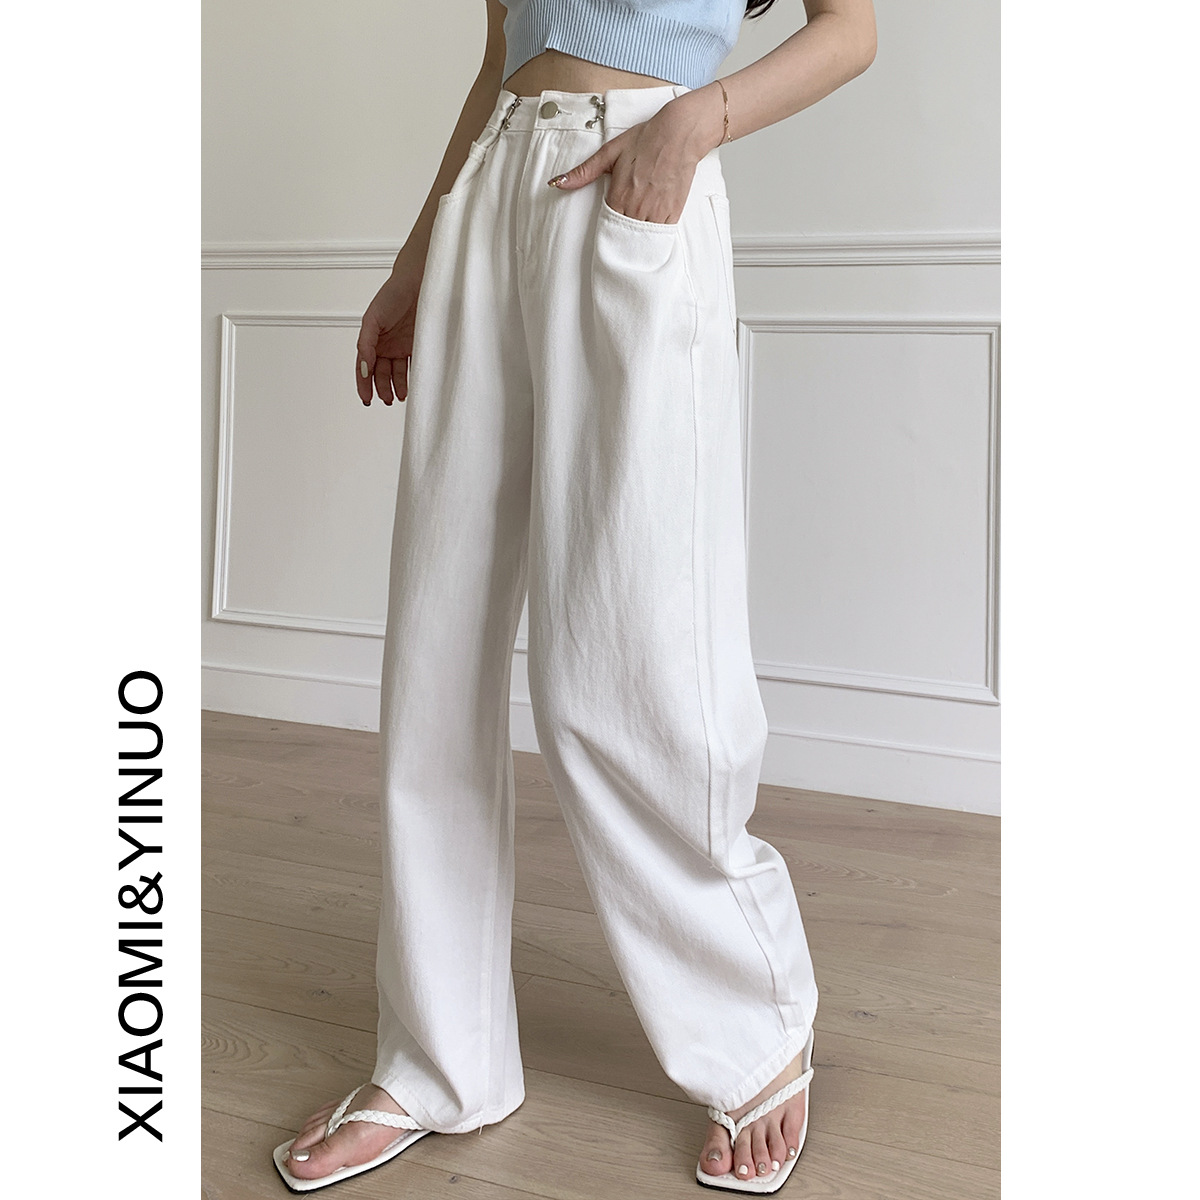 White trousers women's jeans summer 2021 new high waist wide leg pants loose mopping pants